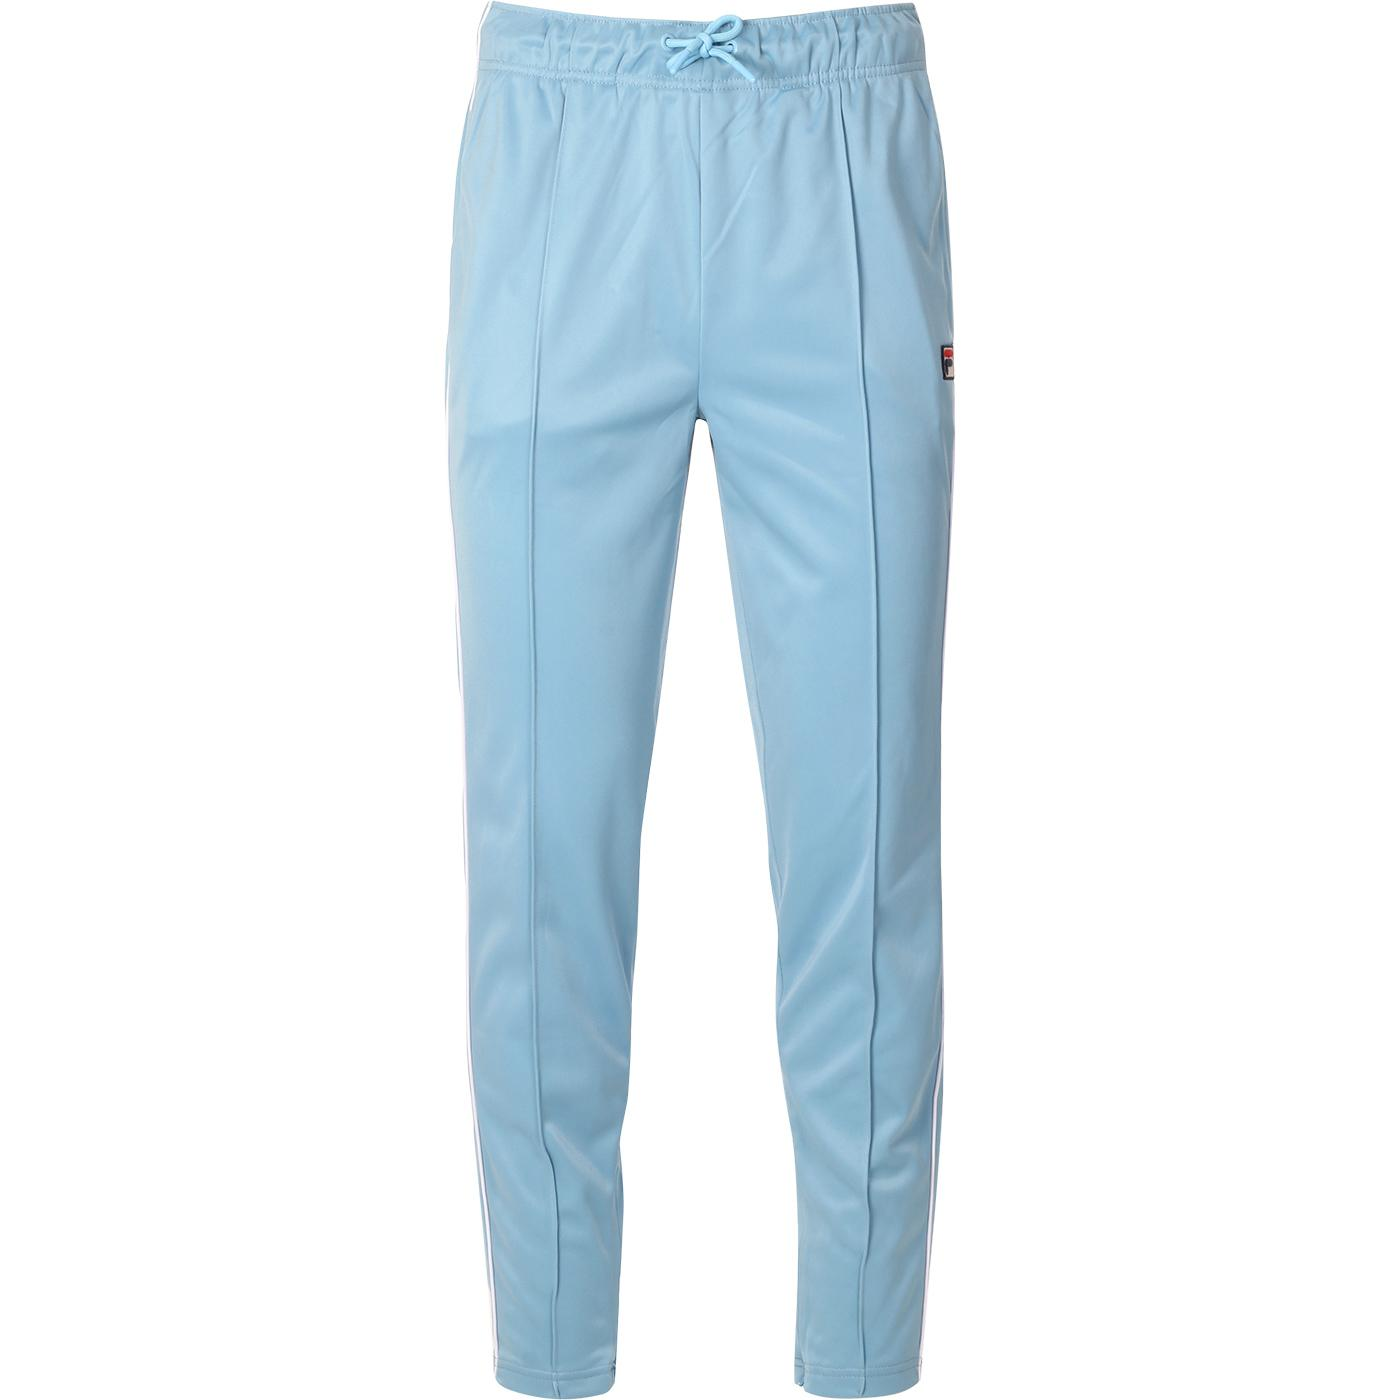 Terry FILA VINTAGE Retro 80s Piped Track Pants AIR